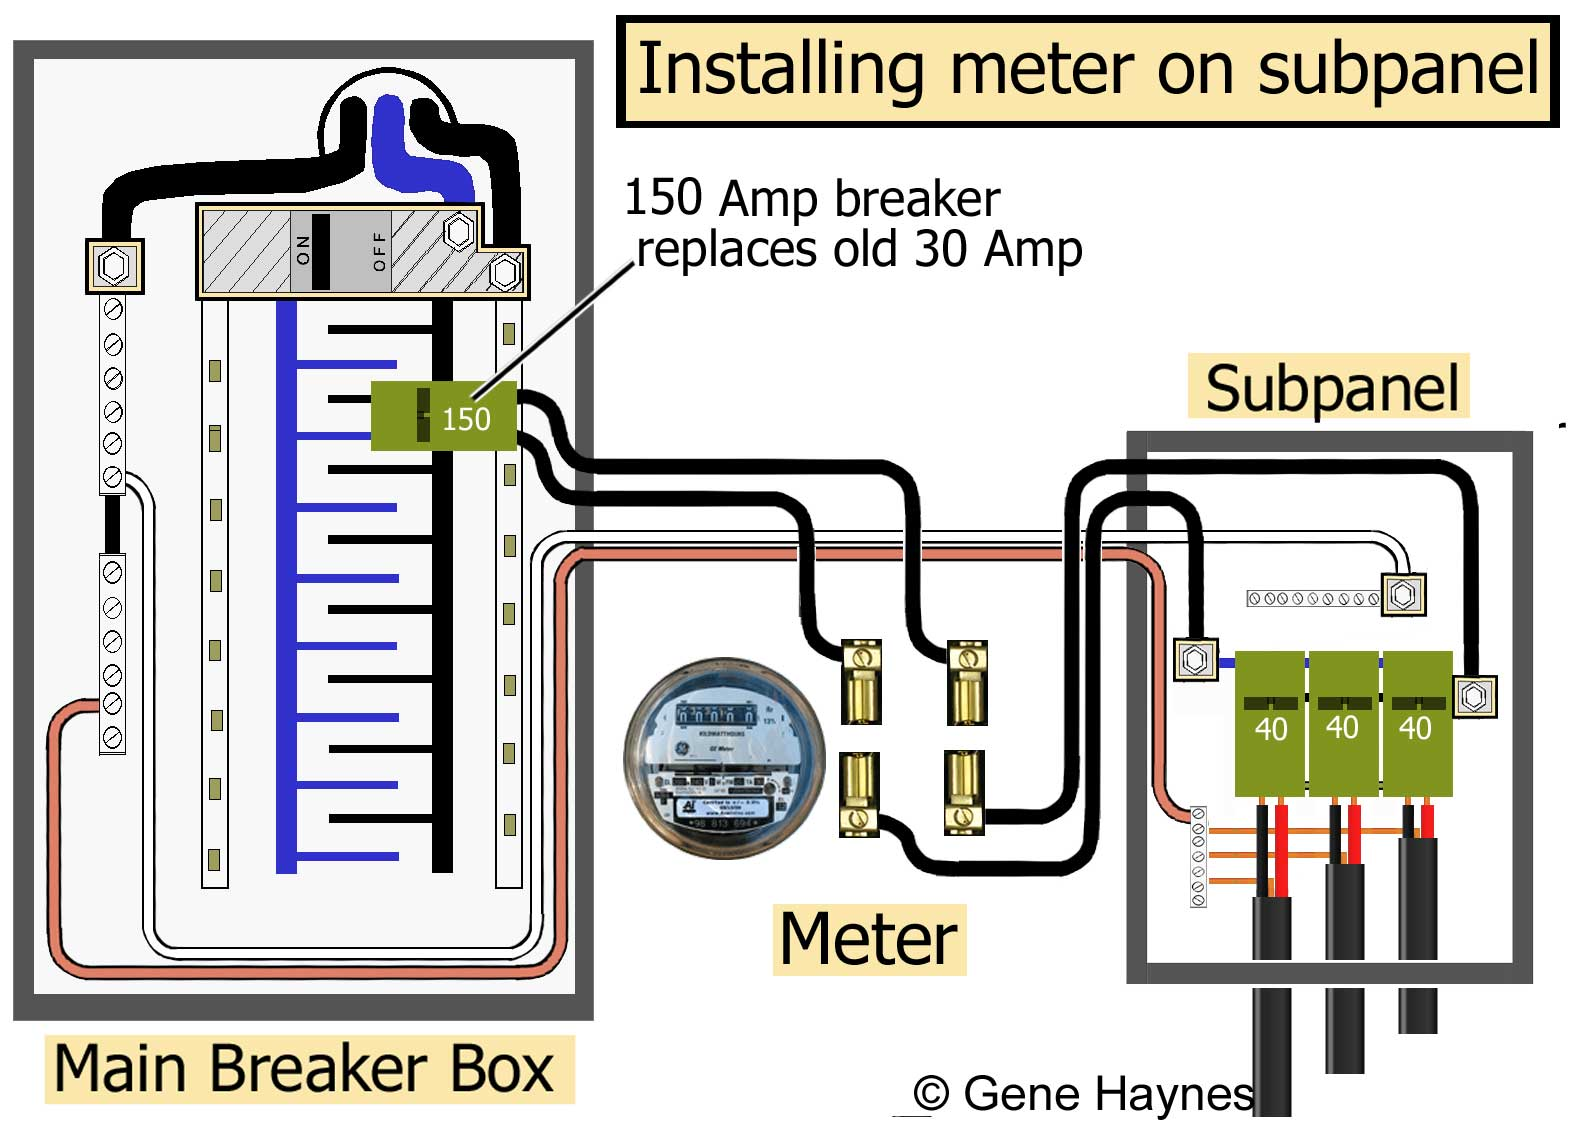 Neutral wire only necessary for 120Volt breakers. Illustration shows  Neutral wire in event you want